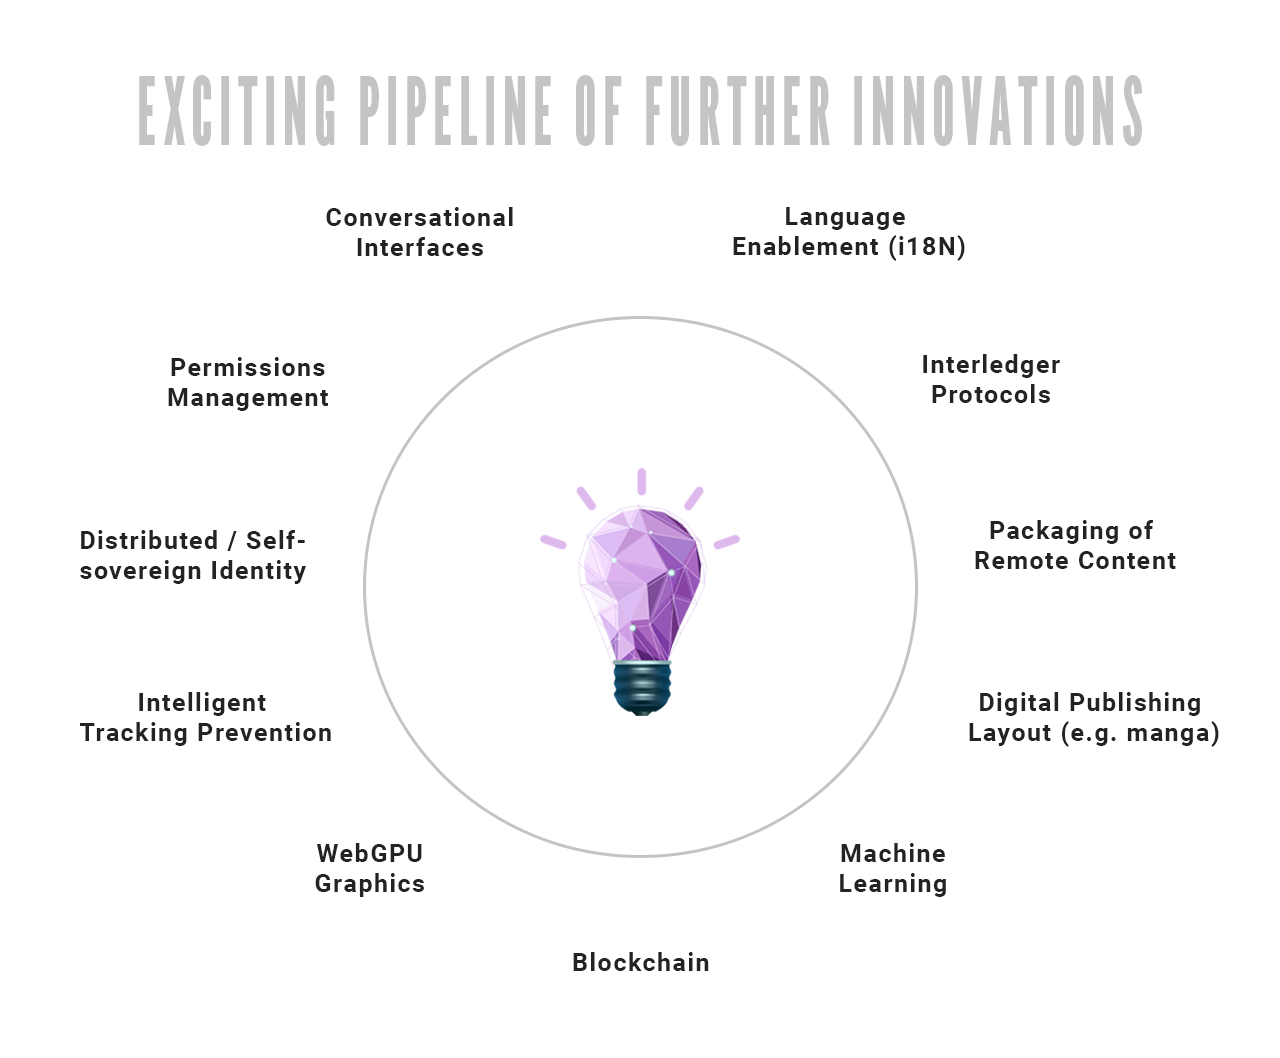 graphic showing the pipeline of Web innovation [Lightbulb design credit: Freepik]